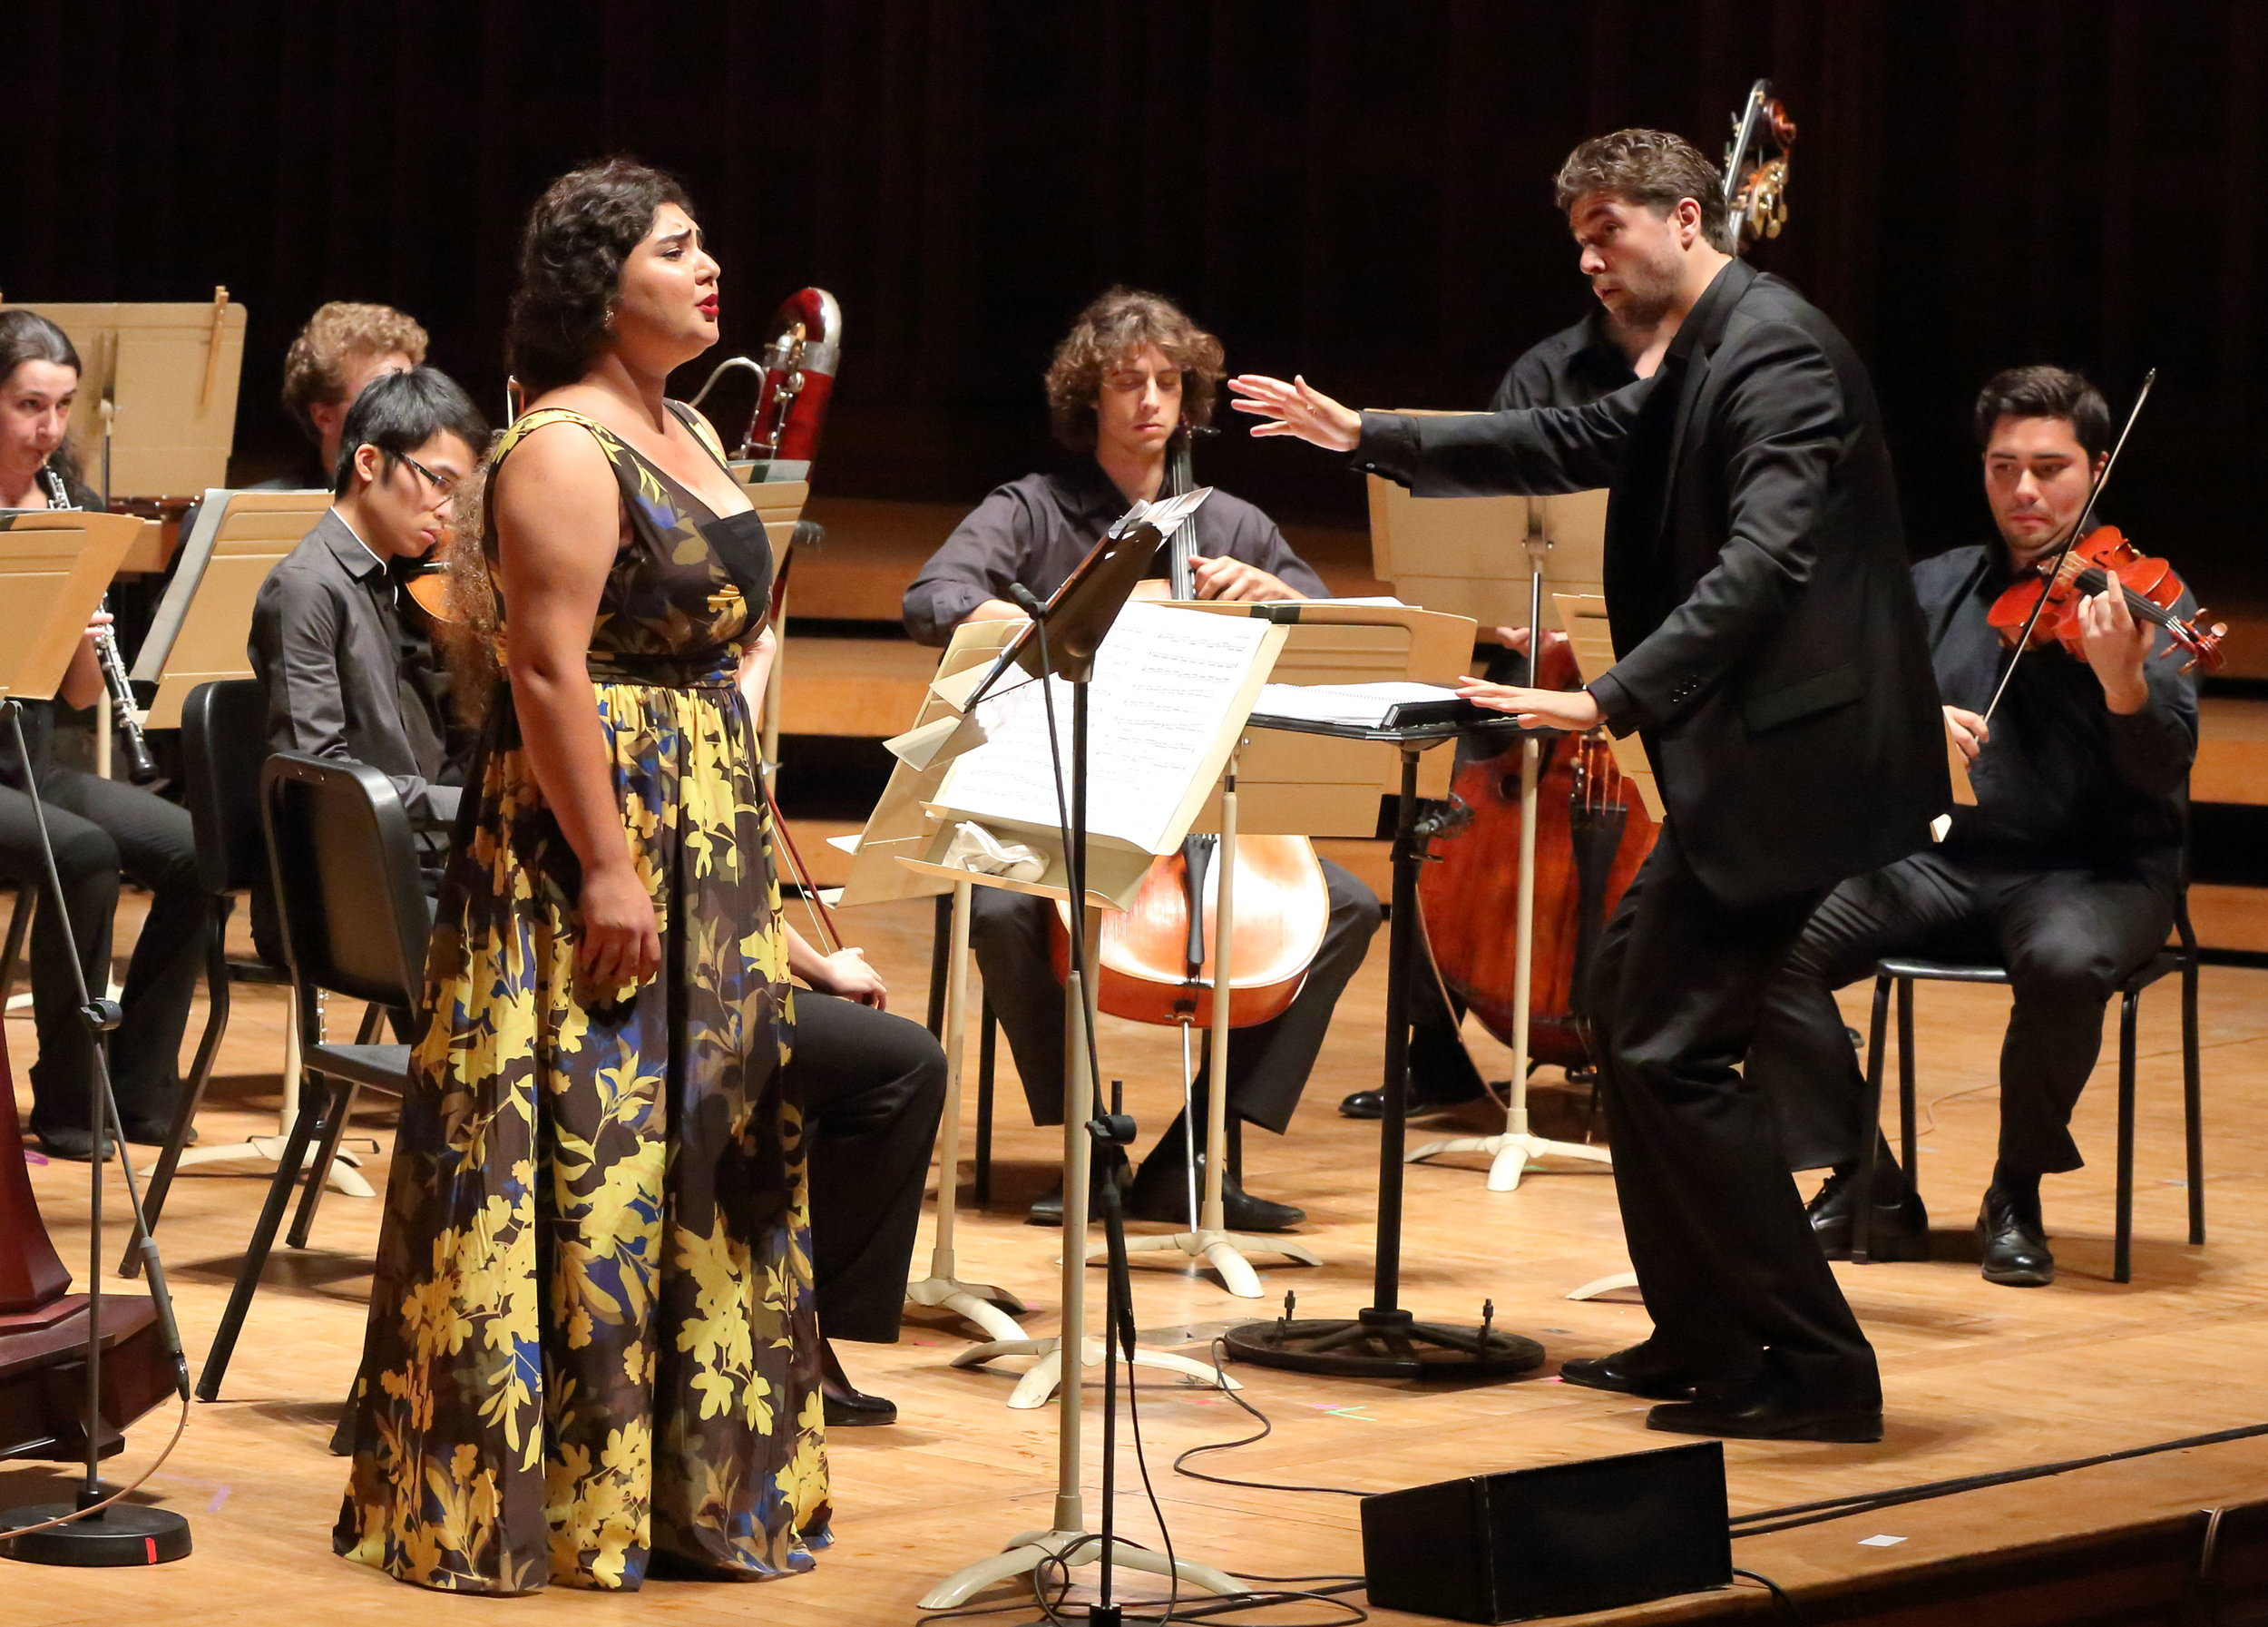 Soprano Bahareh Poureslami, conductor Christian Reif, and the TMCO perform Esa-Pekka Salonen's -Five Images after Sappho- (1999), 7.21.2016 (Hilary Scott).jpg